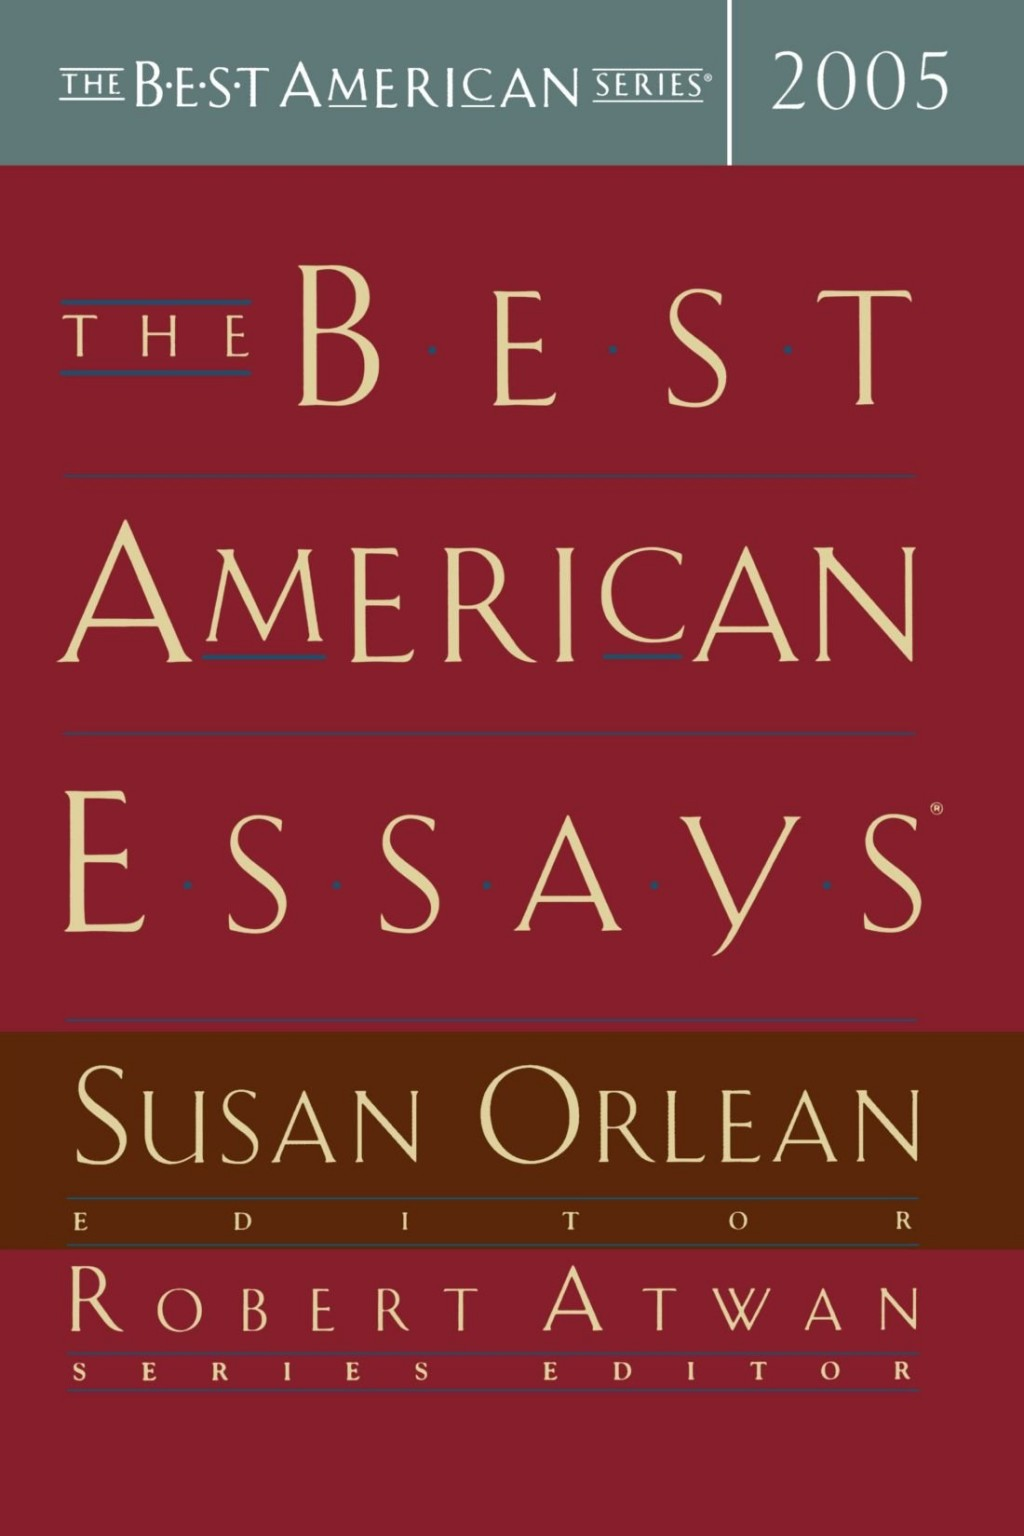 009 Essay Example 61eba7rjfxl The Best American Wonderful Essays Of Century Table Contents 2013 Pdf Download Large